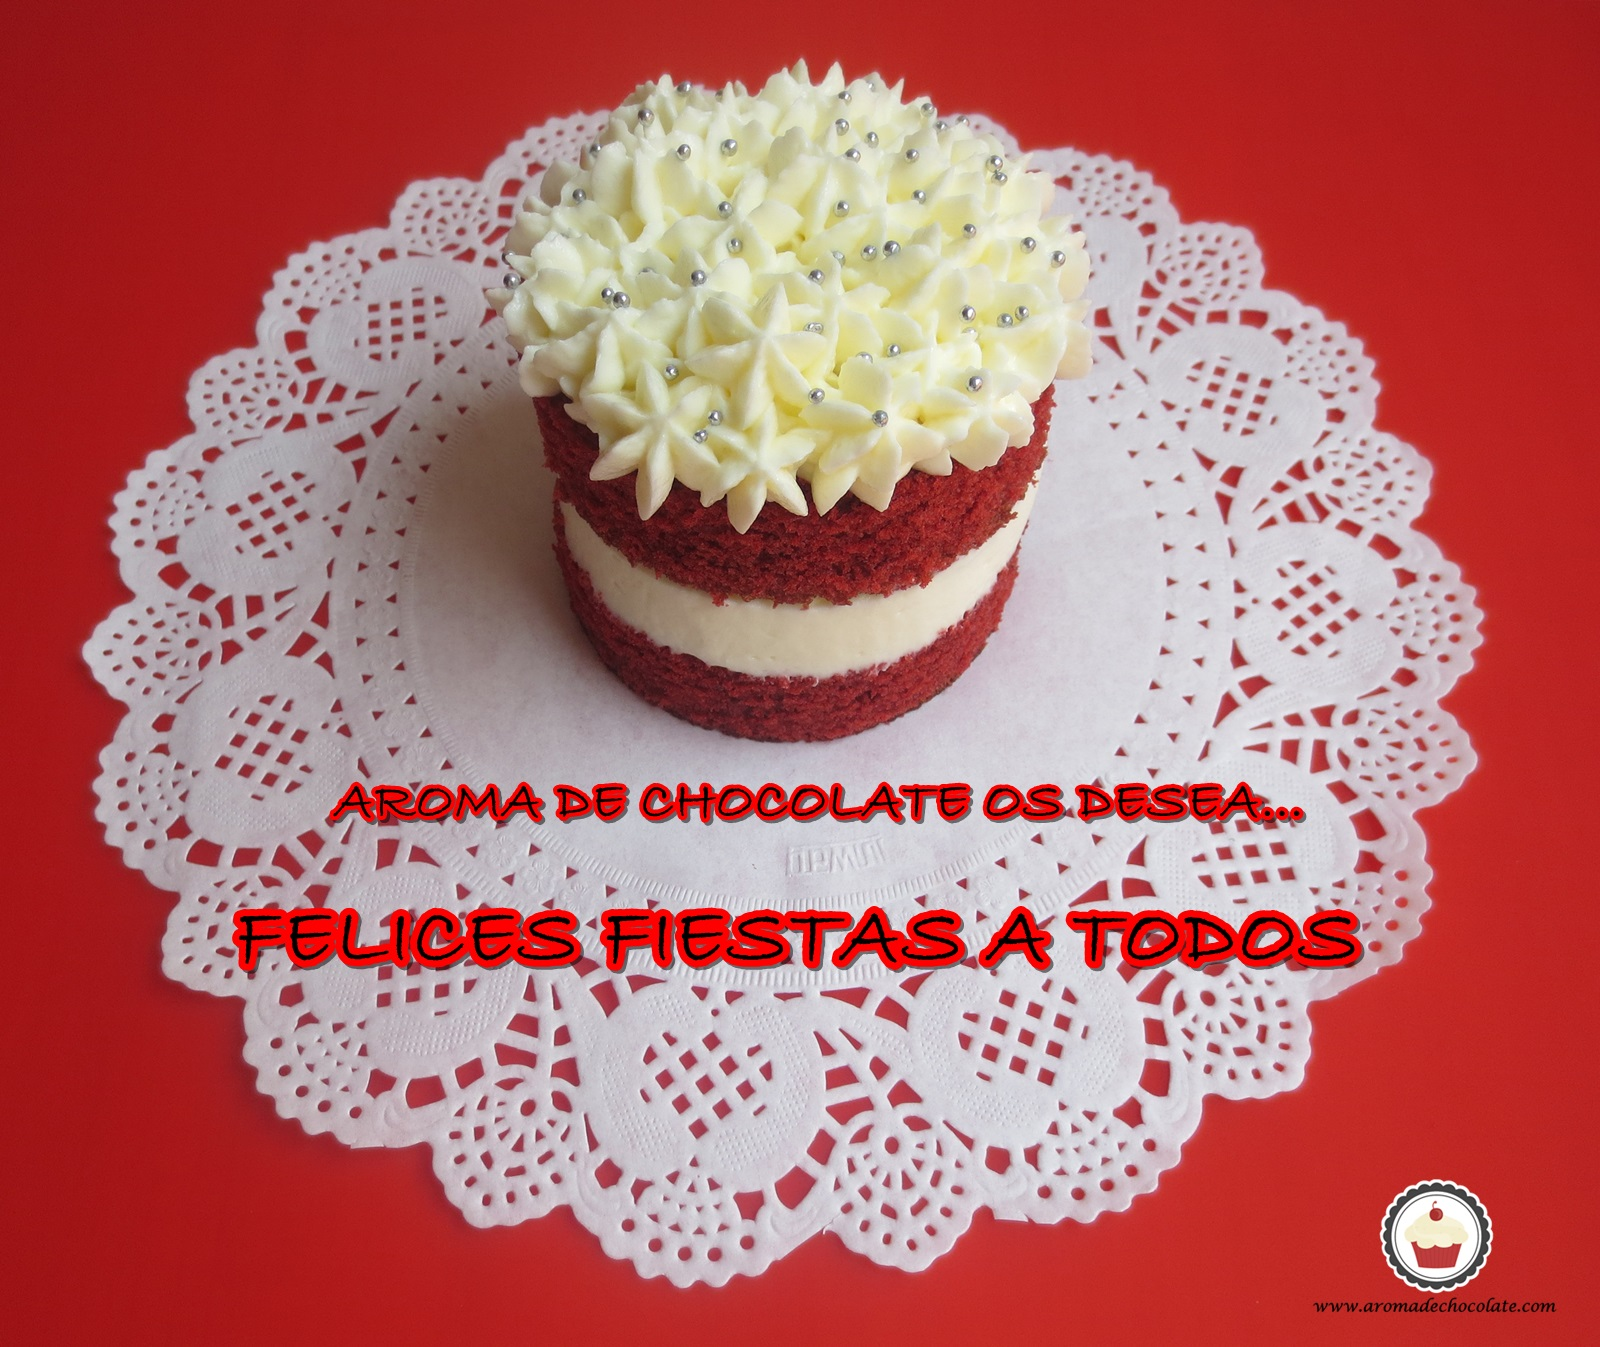 Red velvet mini cake. Aroma de chocolate